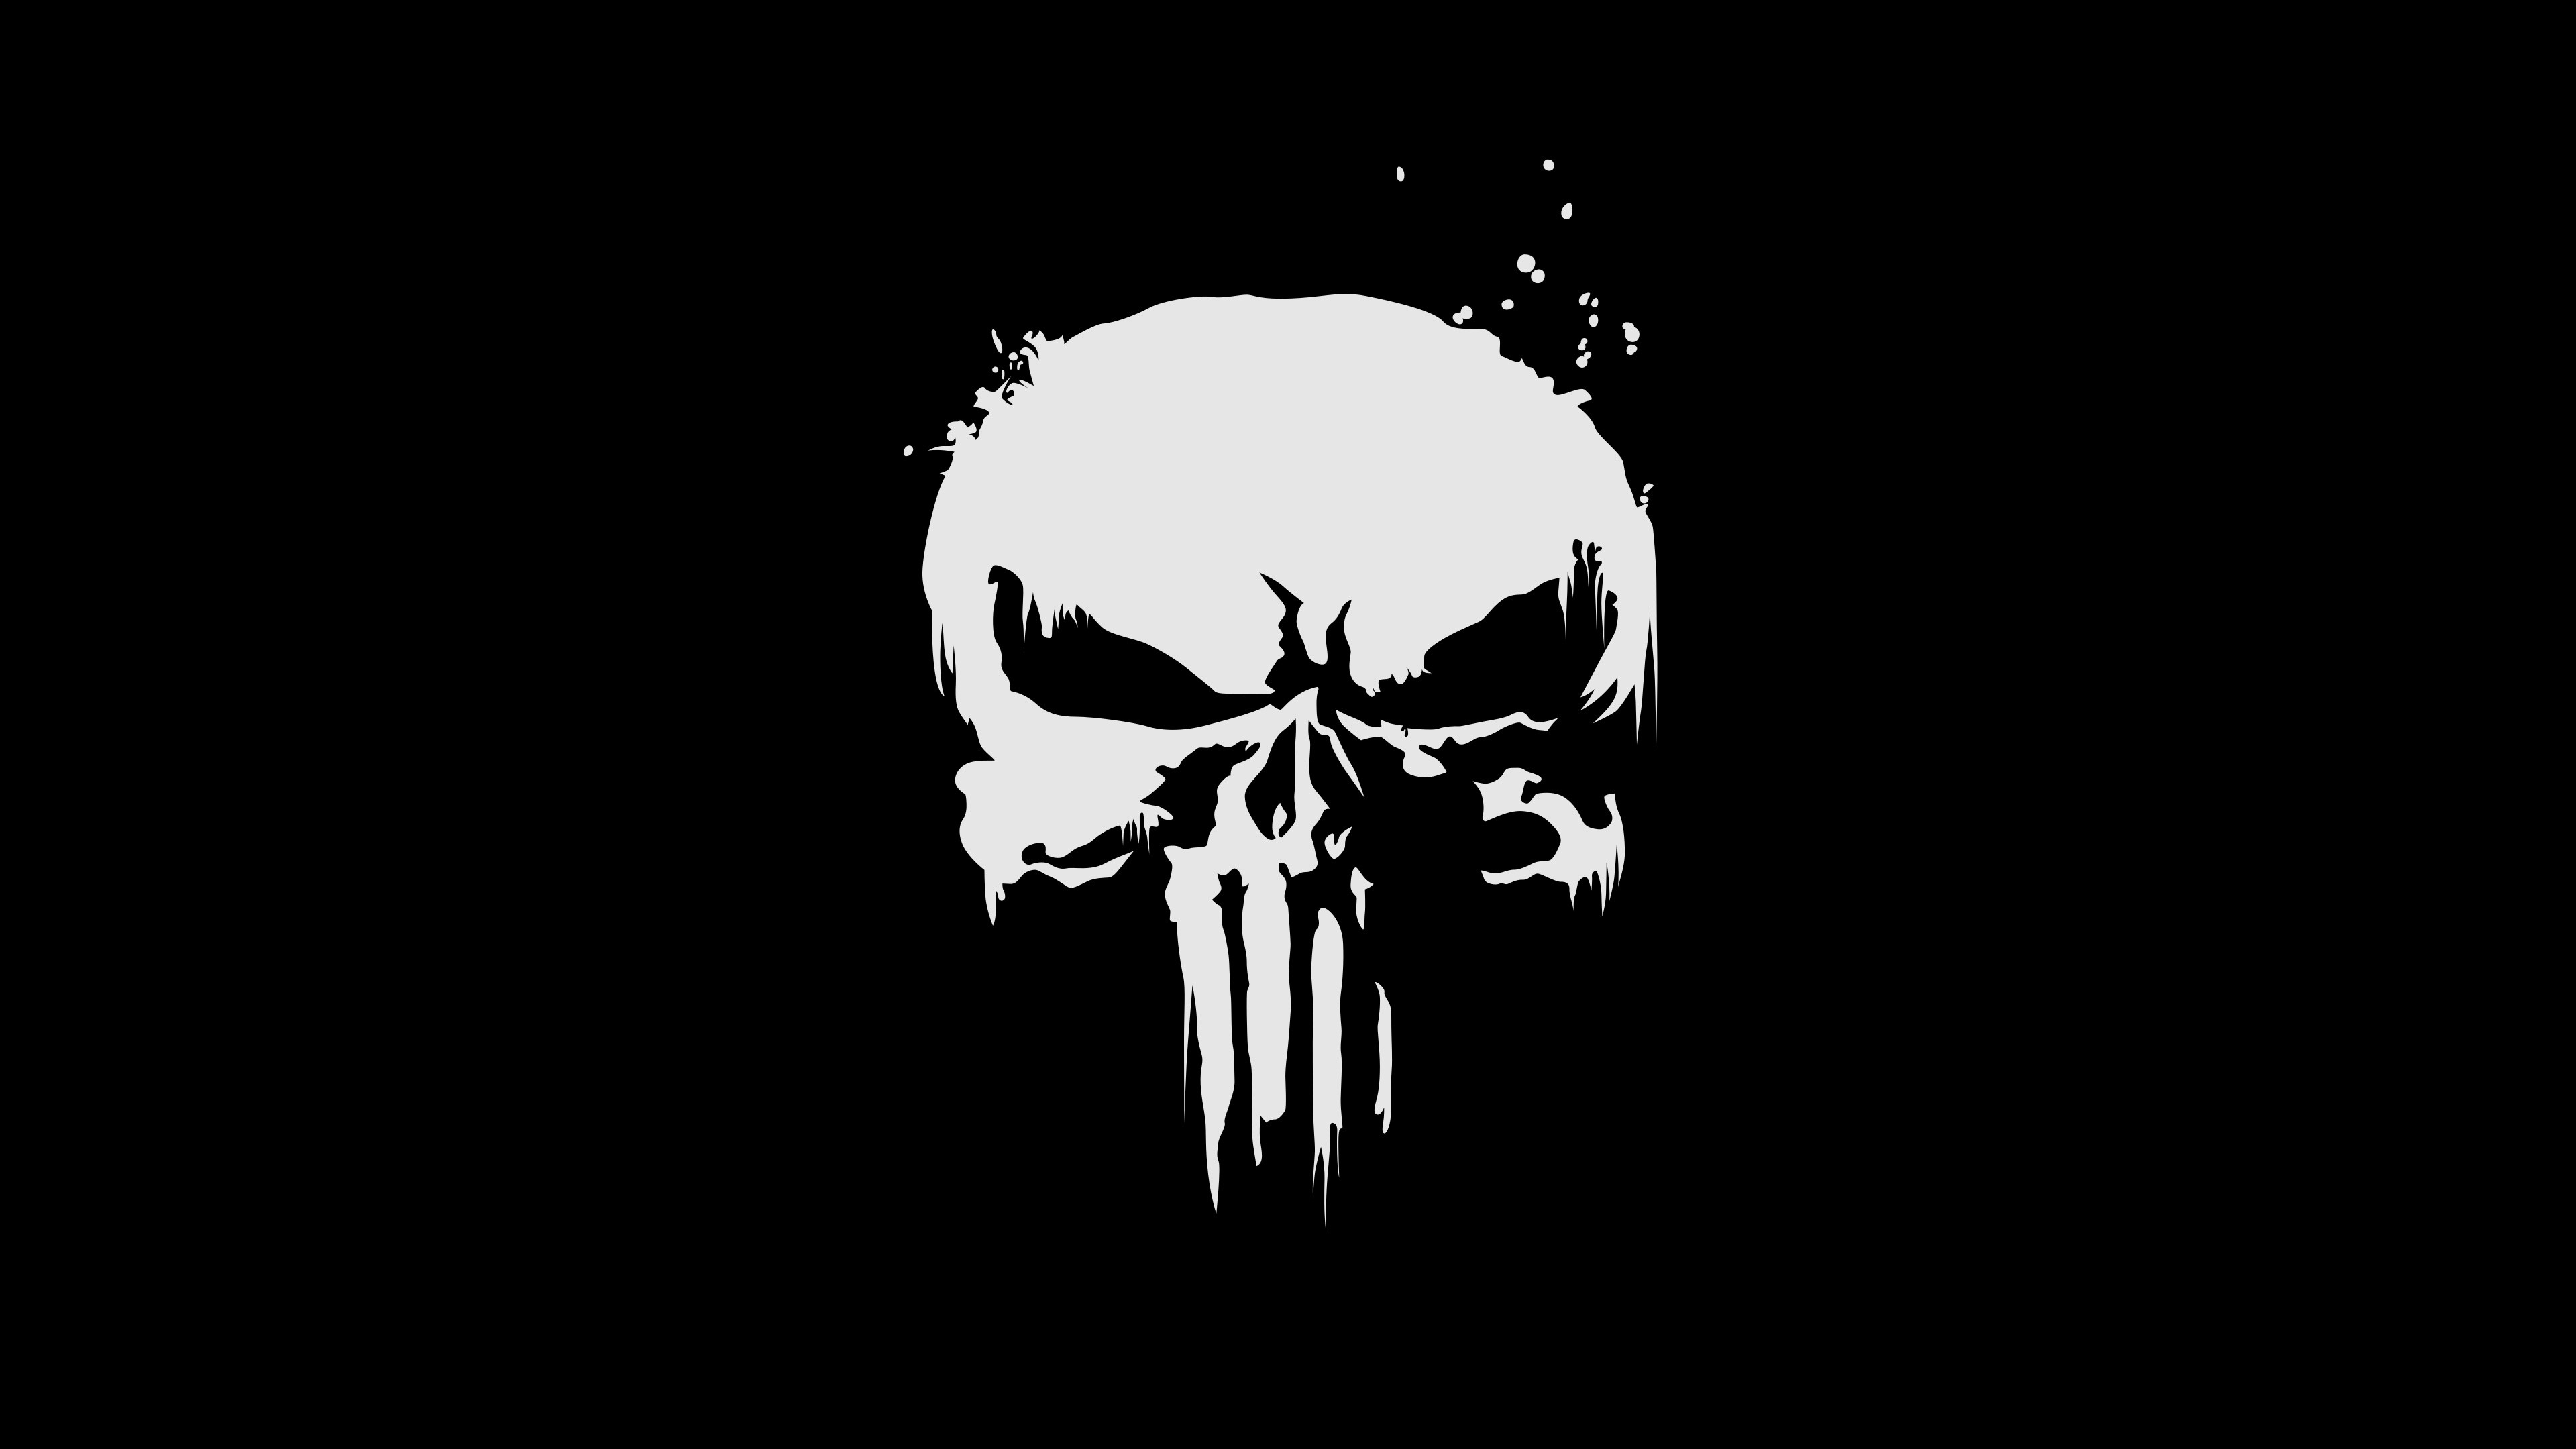 Res: 3840x2160, Fernsehserien - The Punisher Marvel Comics Wallpaper